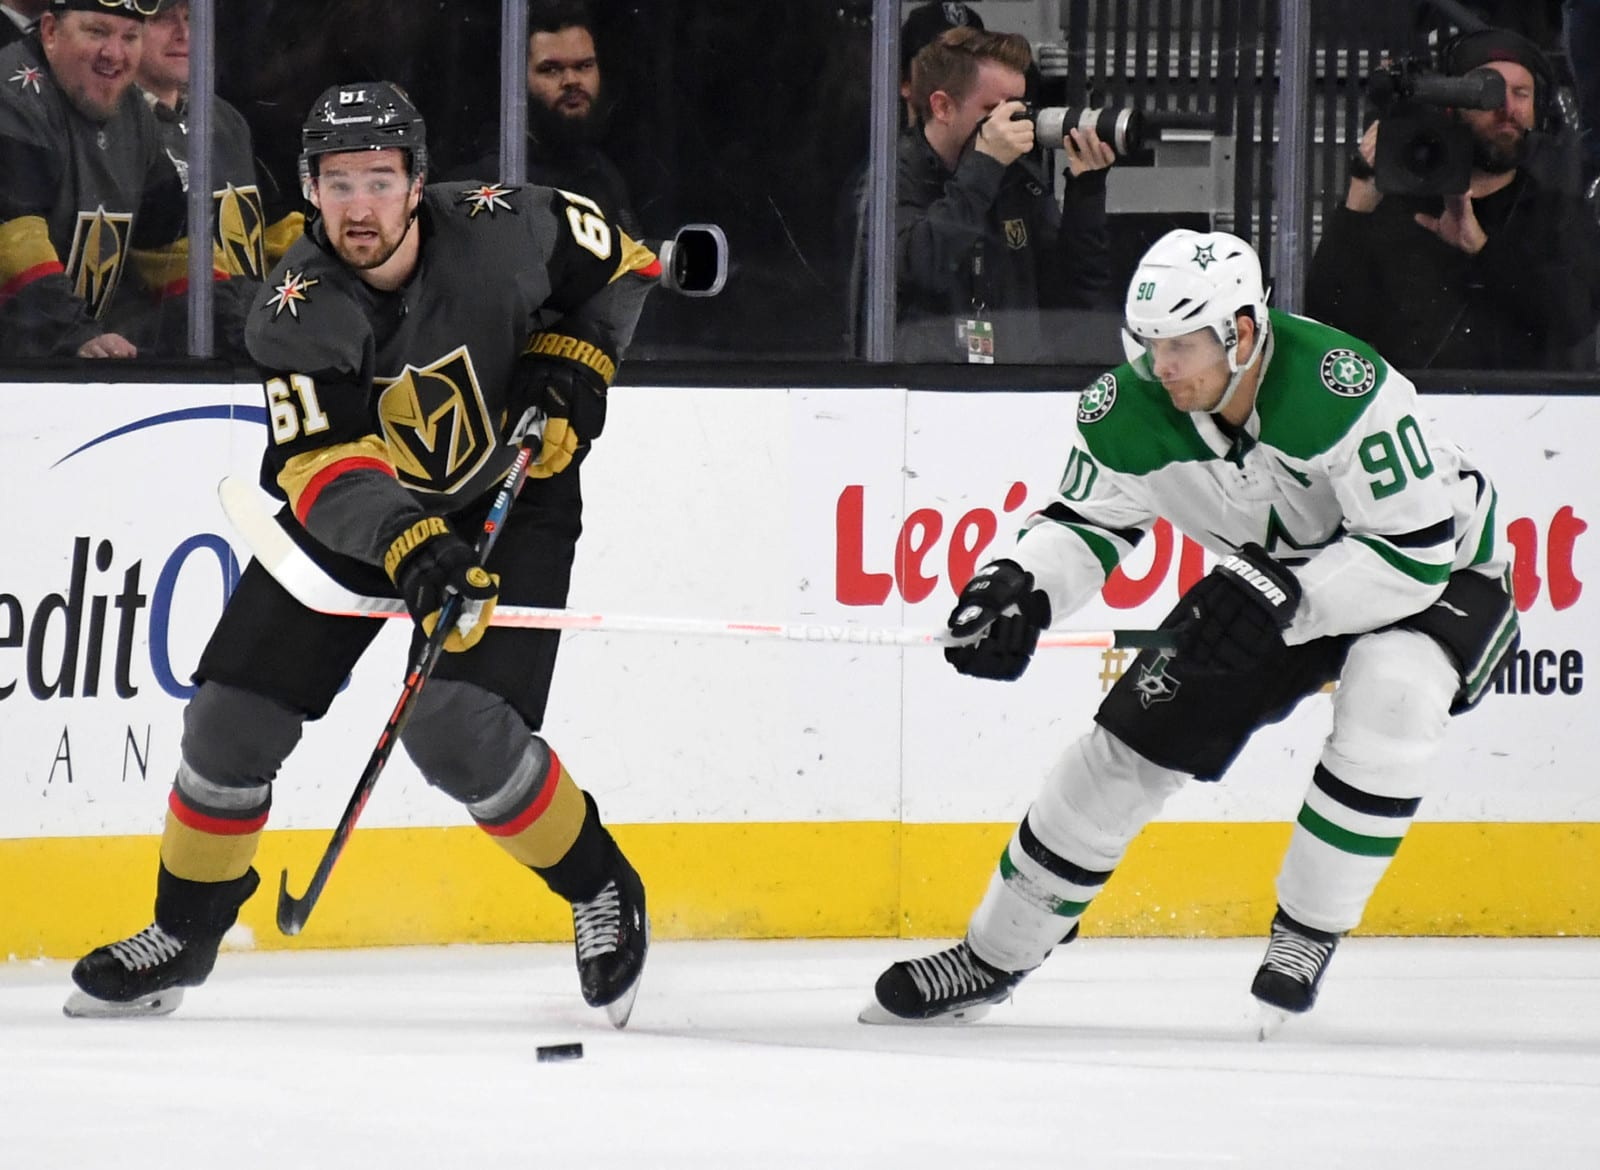 Mark Stone #61 of the Vegas Golden Knights passes the puck under pressure.